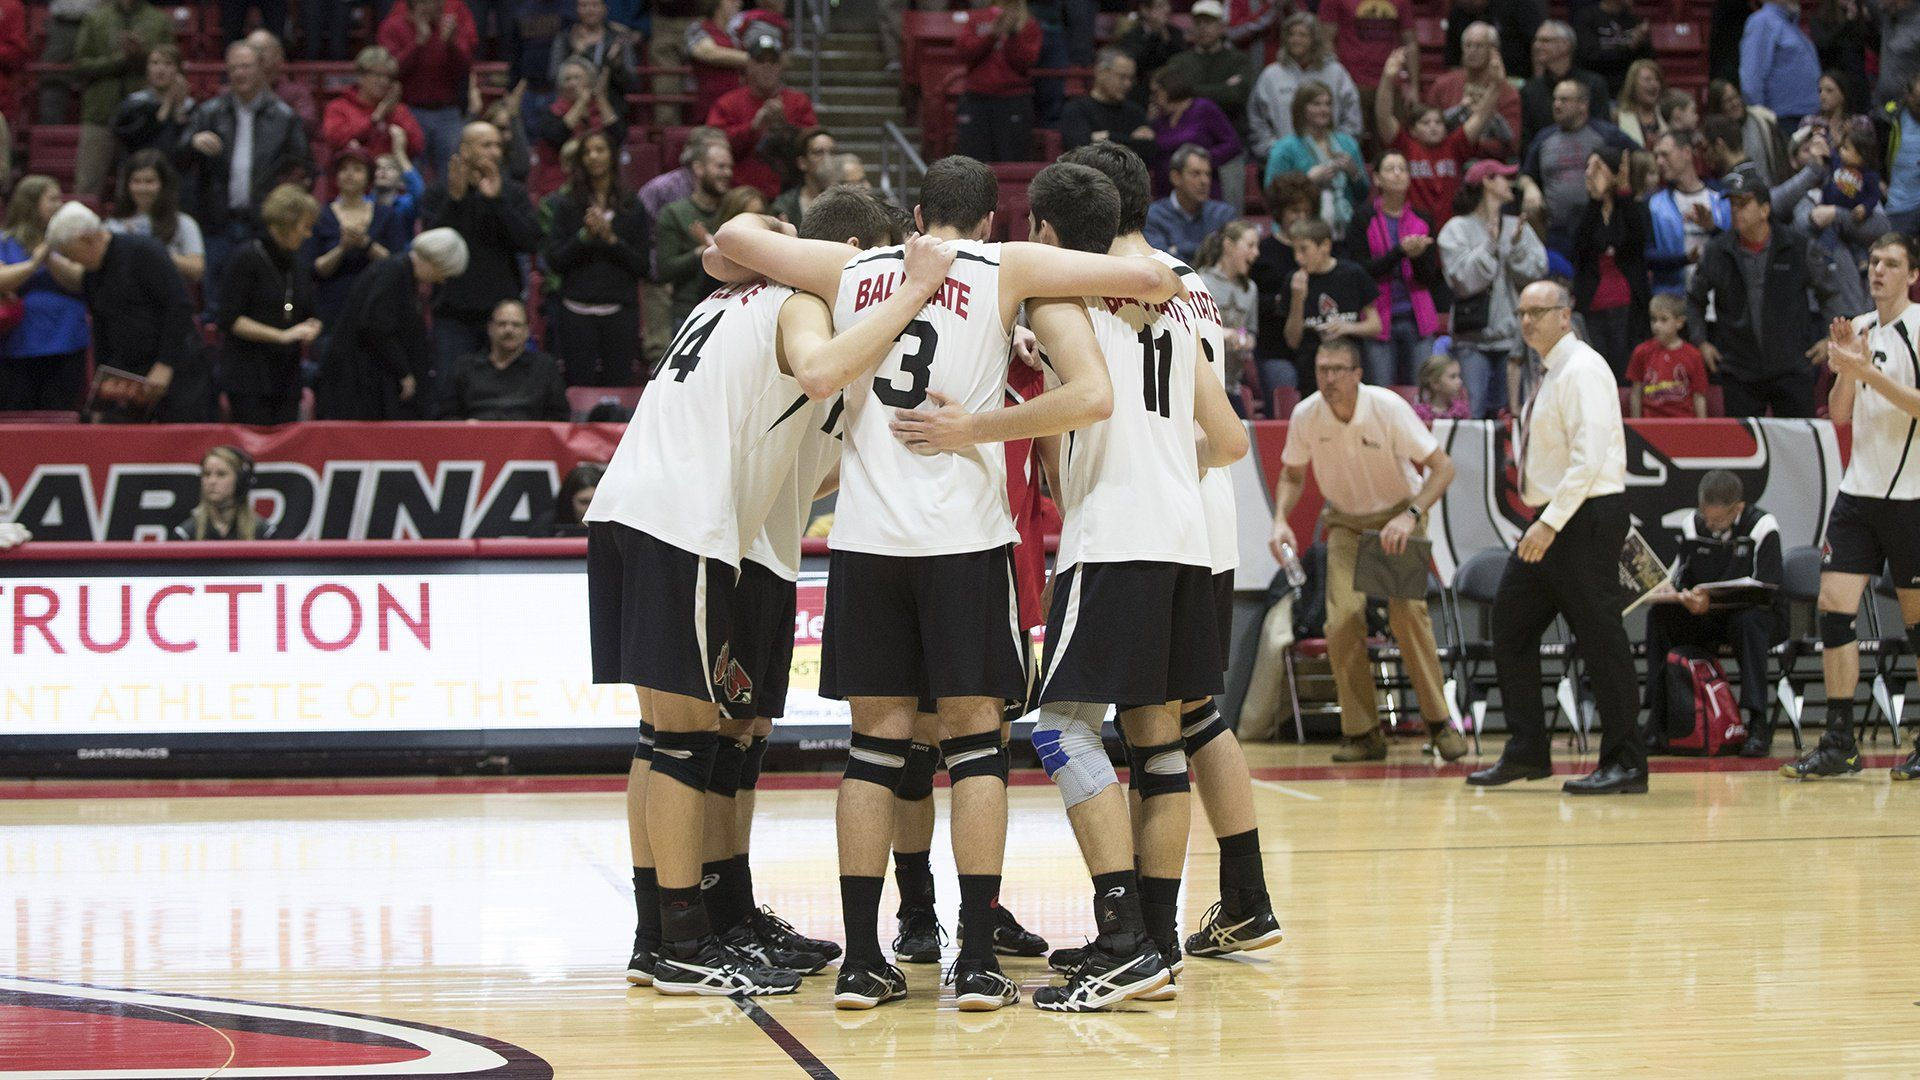 Volleymob Men 8217 S Power Rankings 11 15 Preseason Ball State Just Misses Top 10 Volleyball News Men Tops